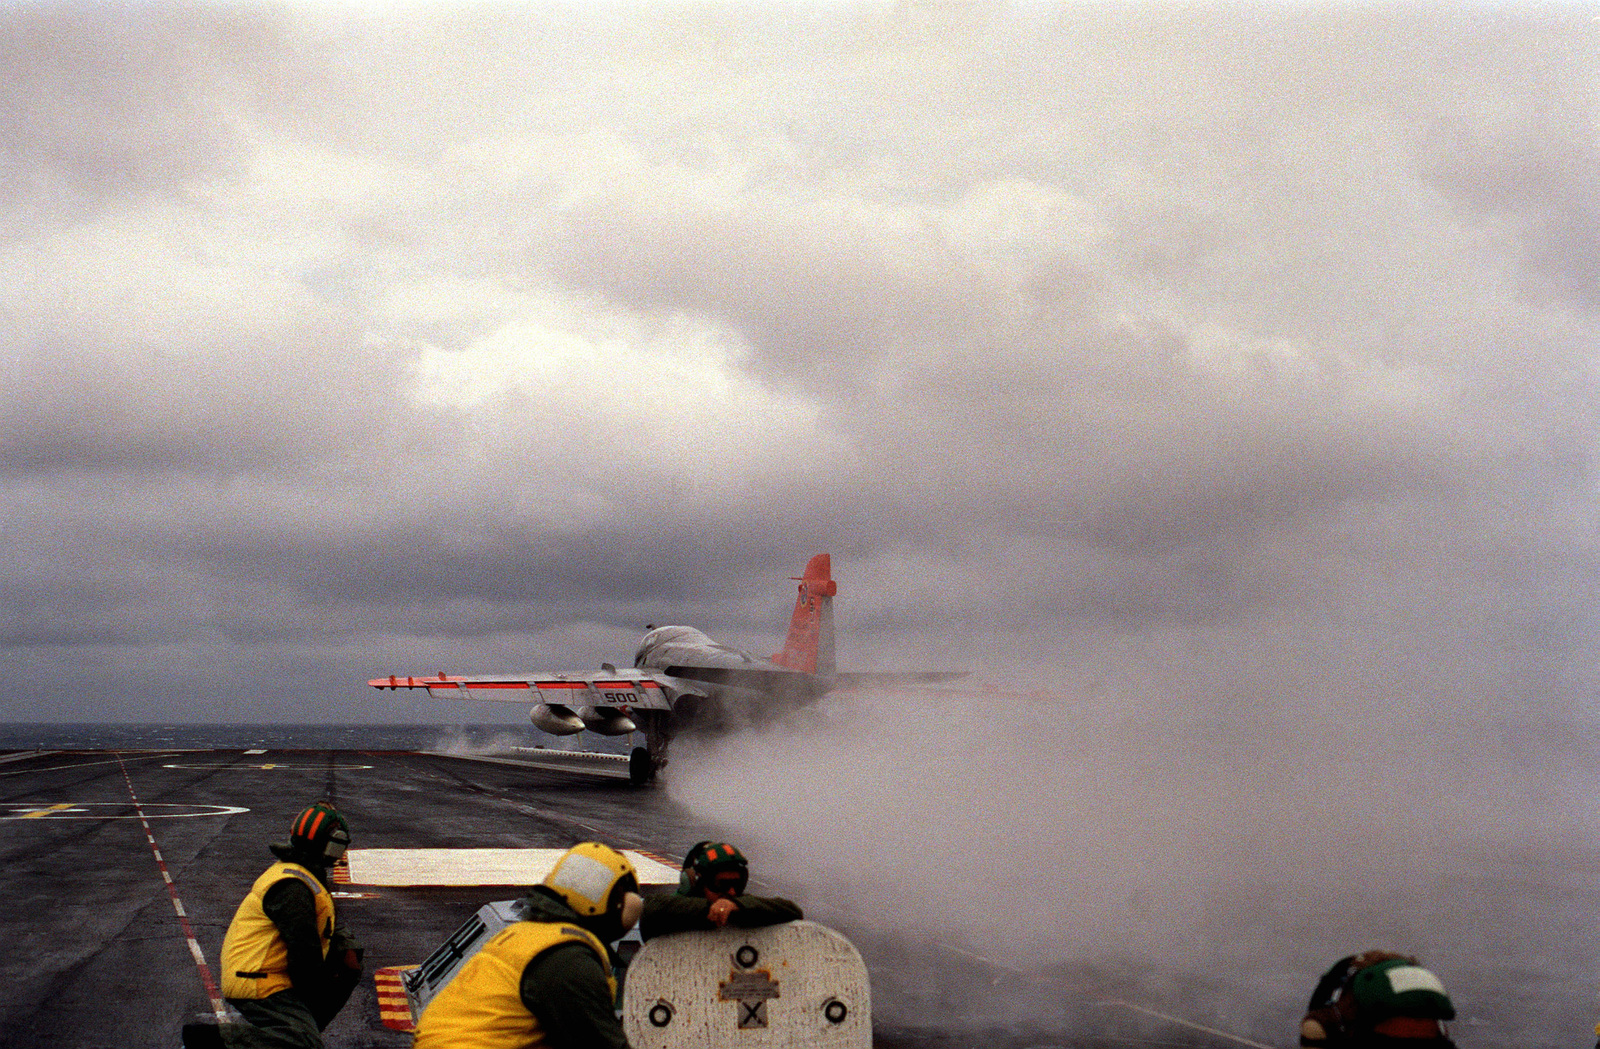 An A-6 Intruder aircraft is launched from the flight deck of the nuclear-powered aircraft carrier USS THEODORE ROOSEVELT (CVN 71)